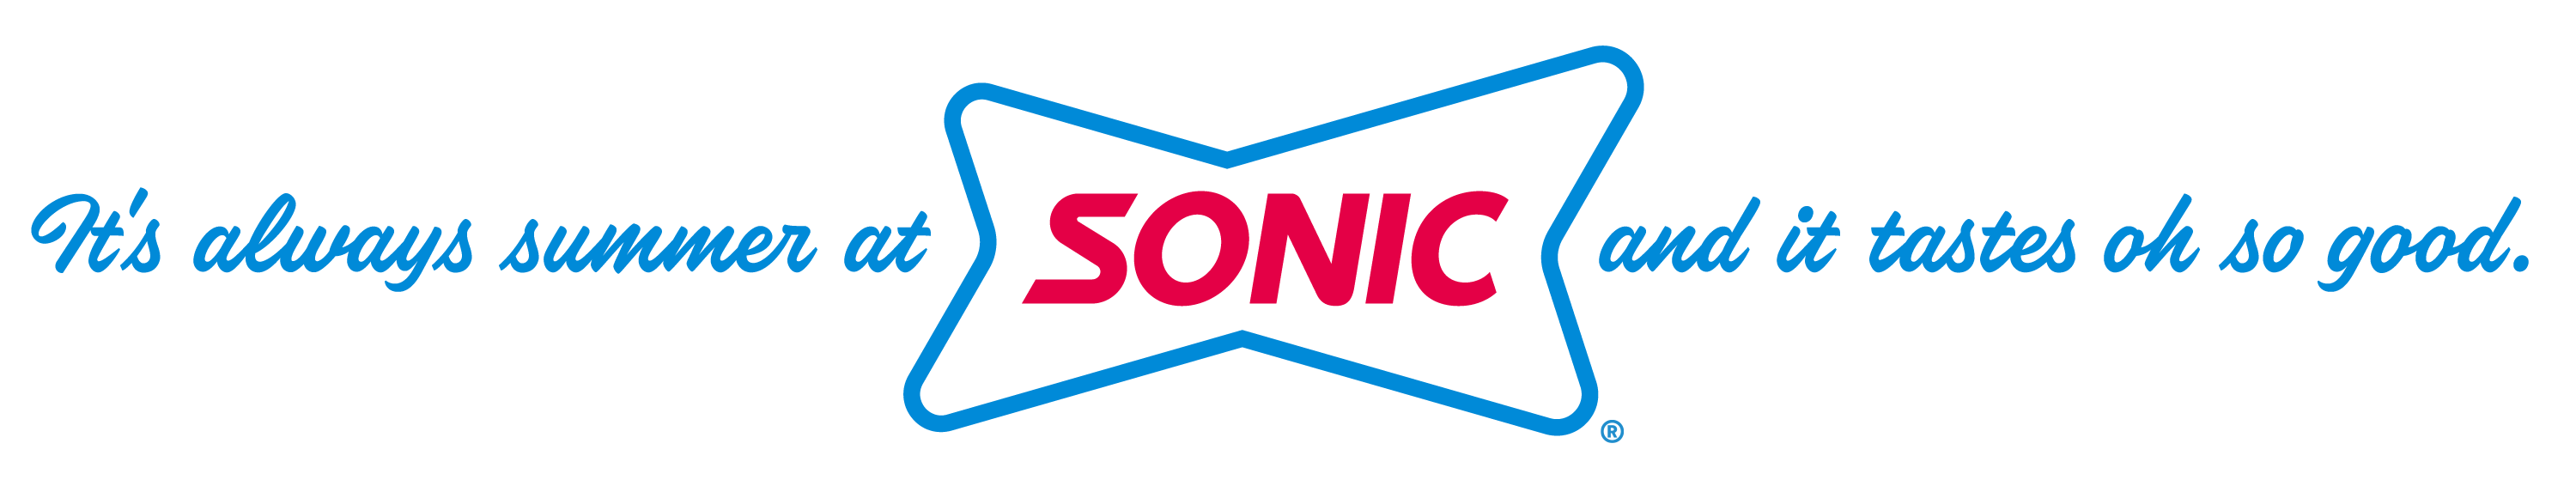 Sonic Drive-In Summer Cup Design Packaging Logo